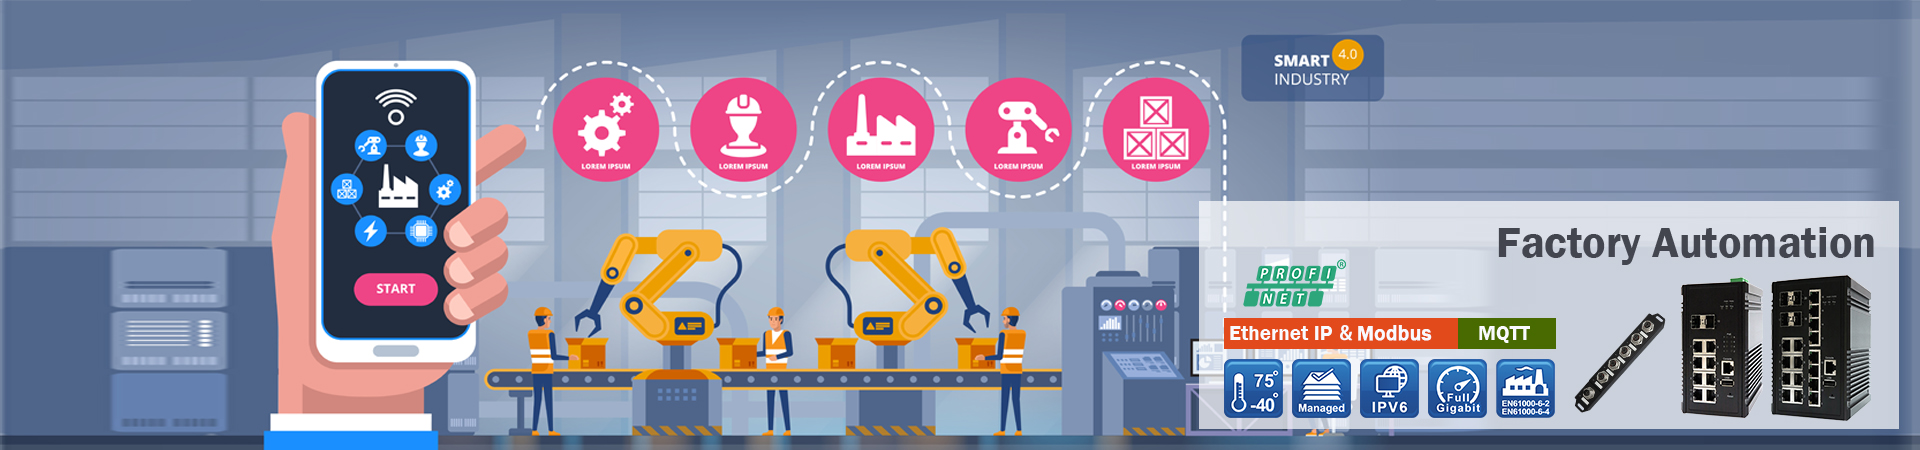 Factory Automation Solution